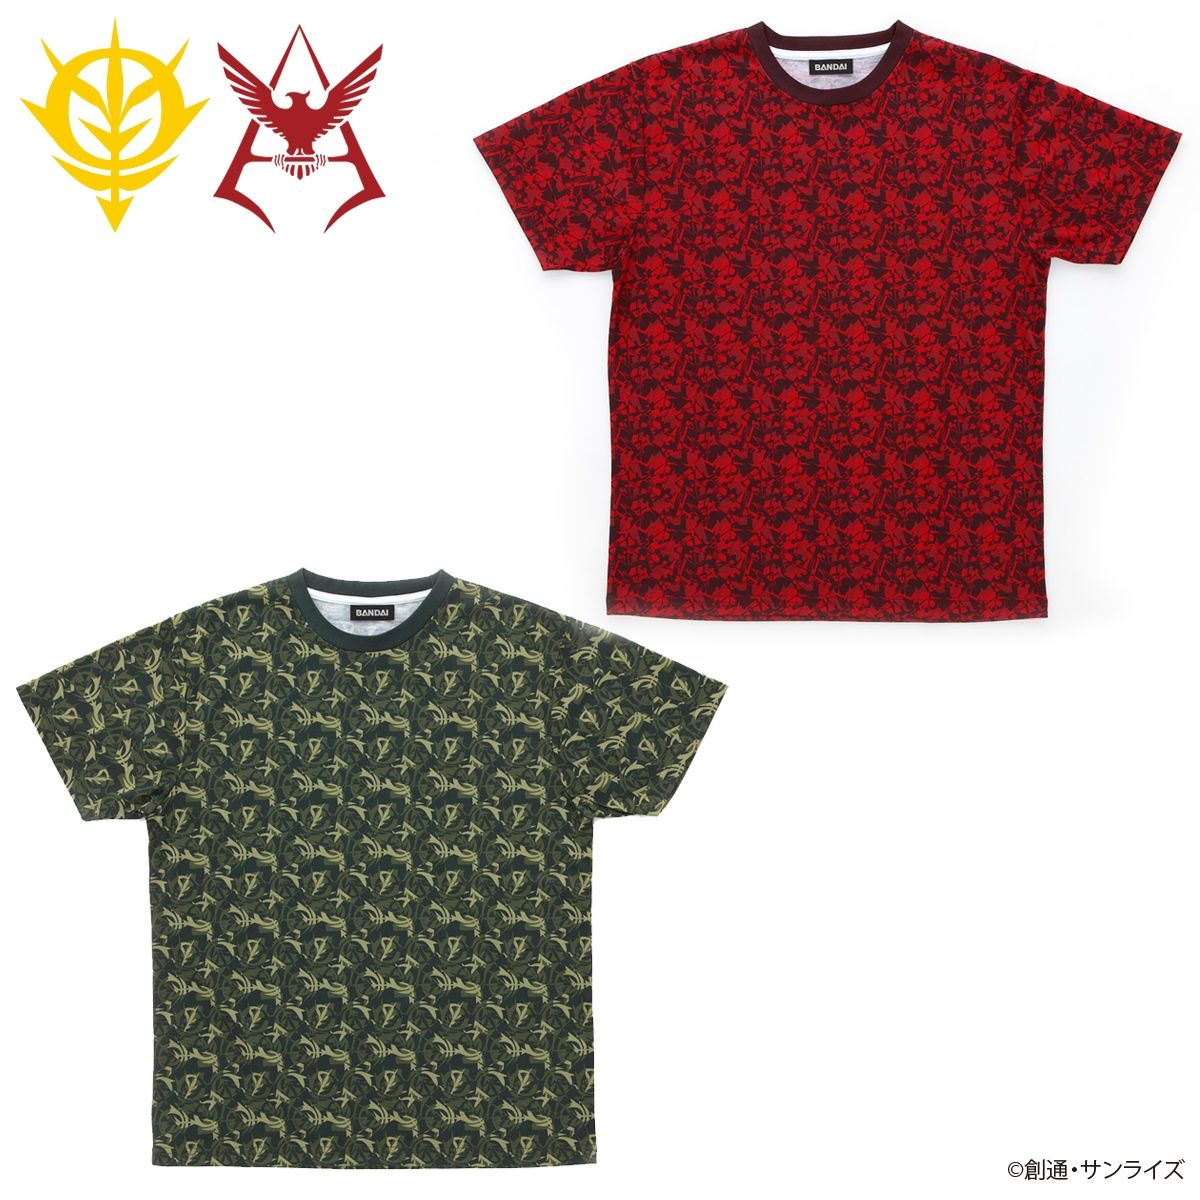 Mobile Suit Gundam Camouflage T-shirt